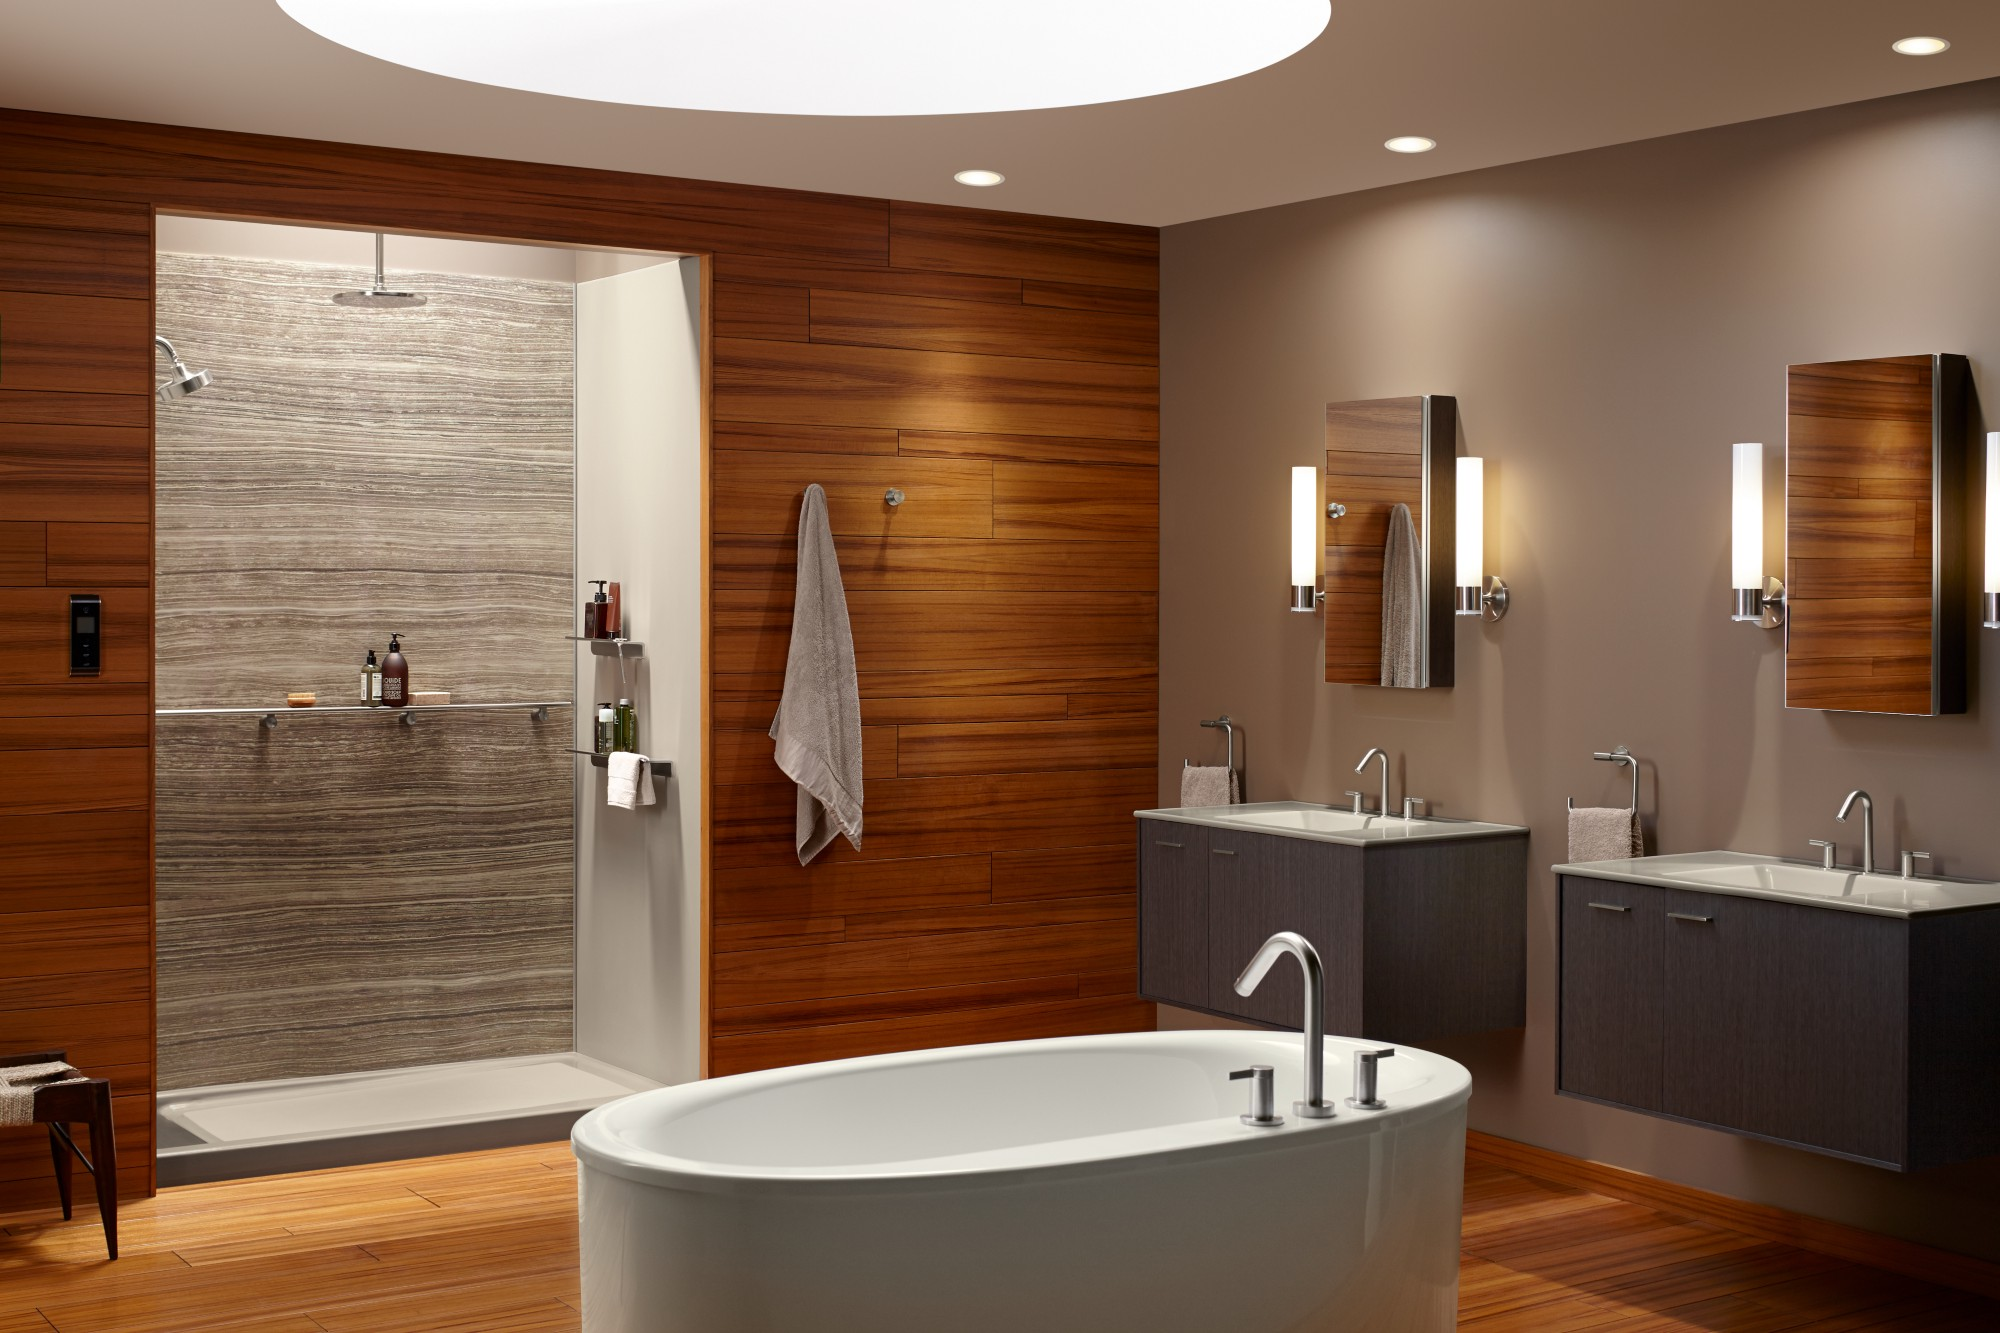 Turn Your Bathroom into a Personal Spa-like Sanctuary